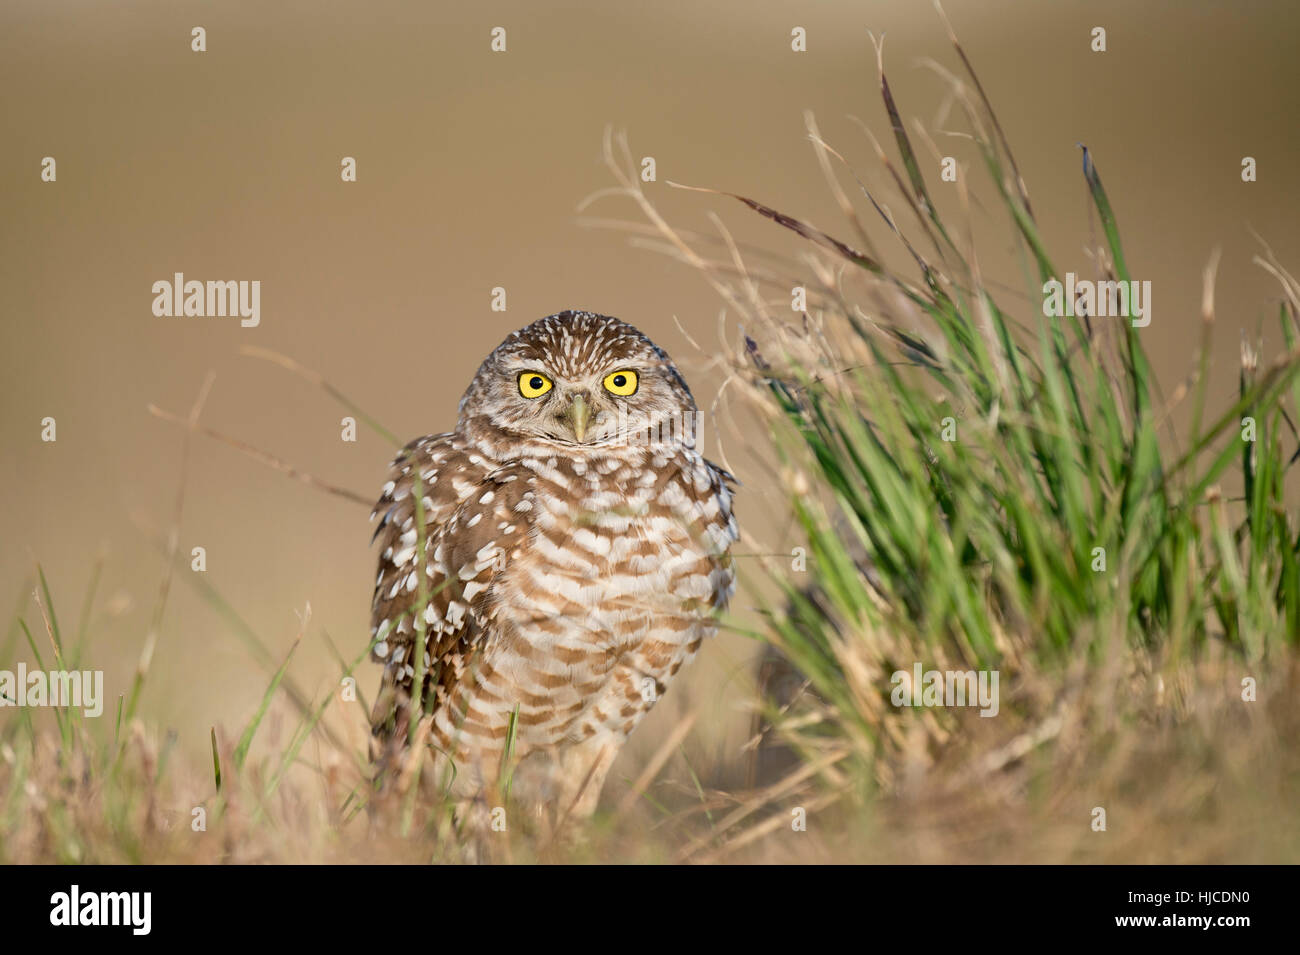 A Florida Burrowing Owl fluffs its feathers out ast it stands next to clump of tall green grass in an open field. - Stock Image